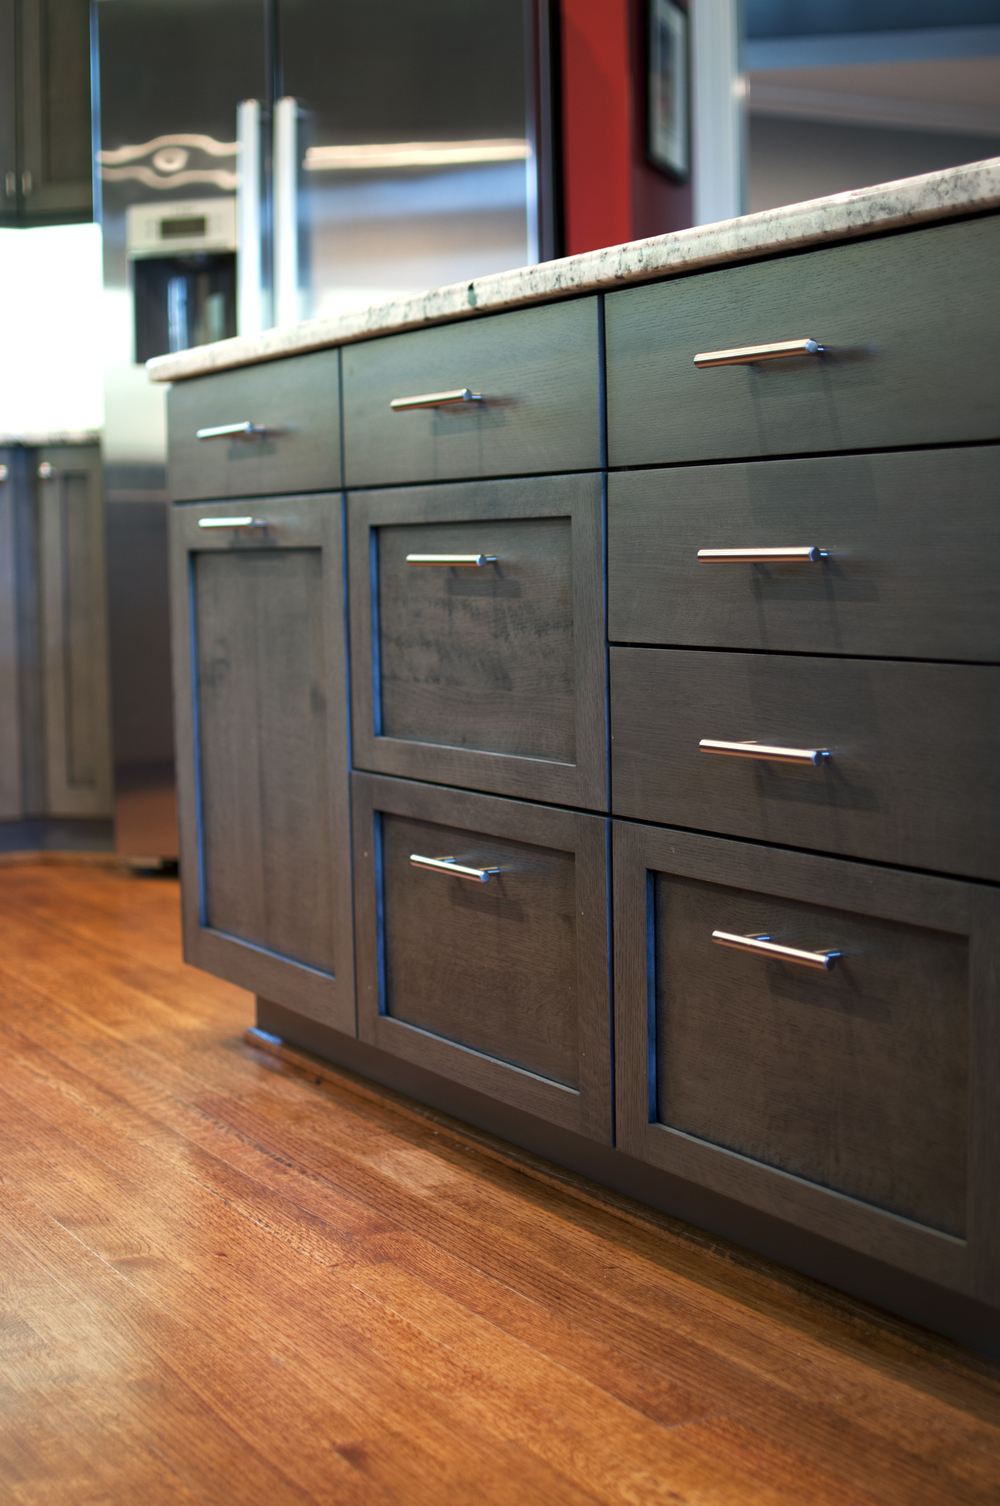 This Project Was A Full Kitchen Renovation, Including Demolition. The  Shaker Style Cabinet Door And Drawer Fronts Are Made Of Quarter Sawn White  Oak.